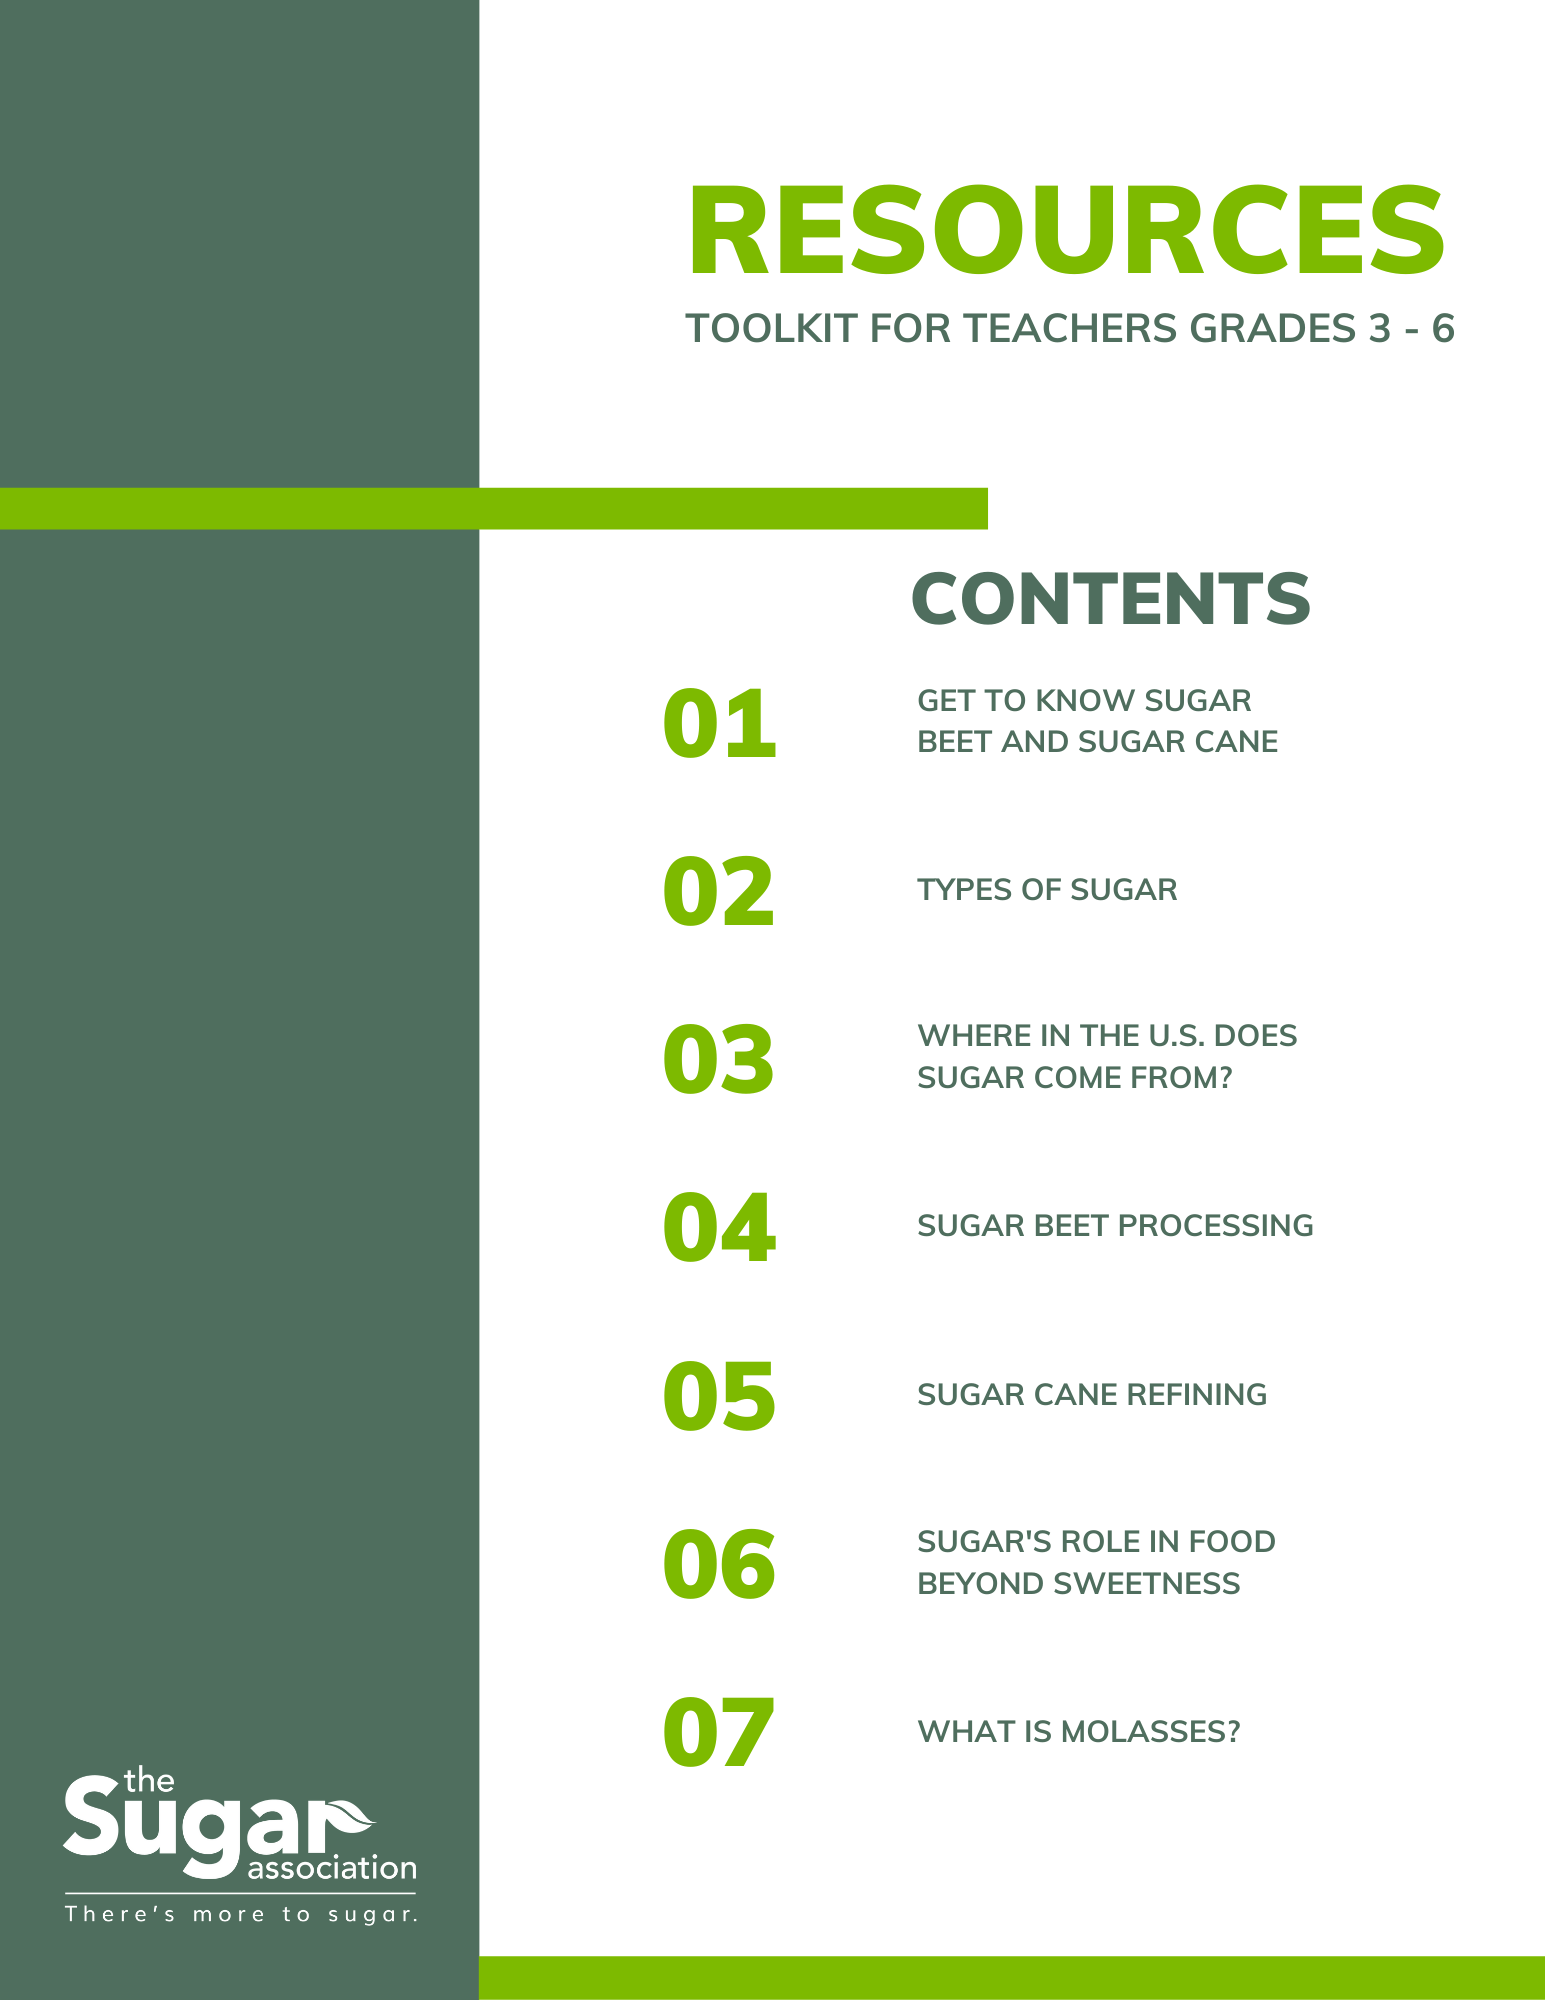 Resource Toolkit for Grades 3-6